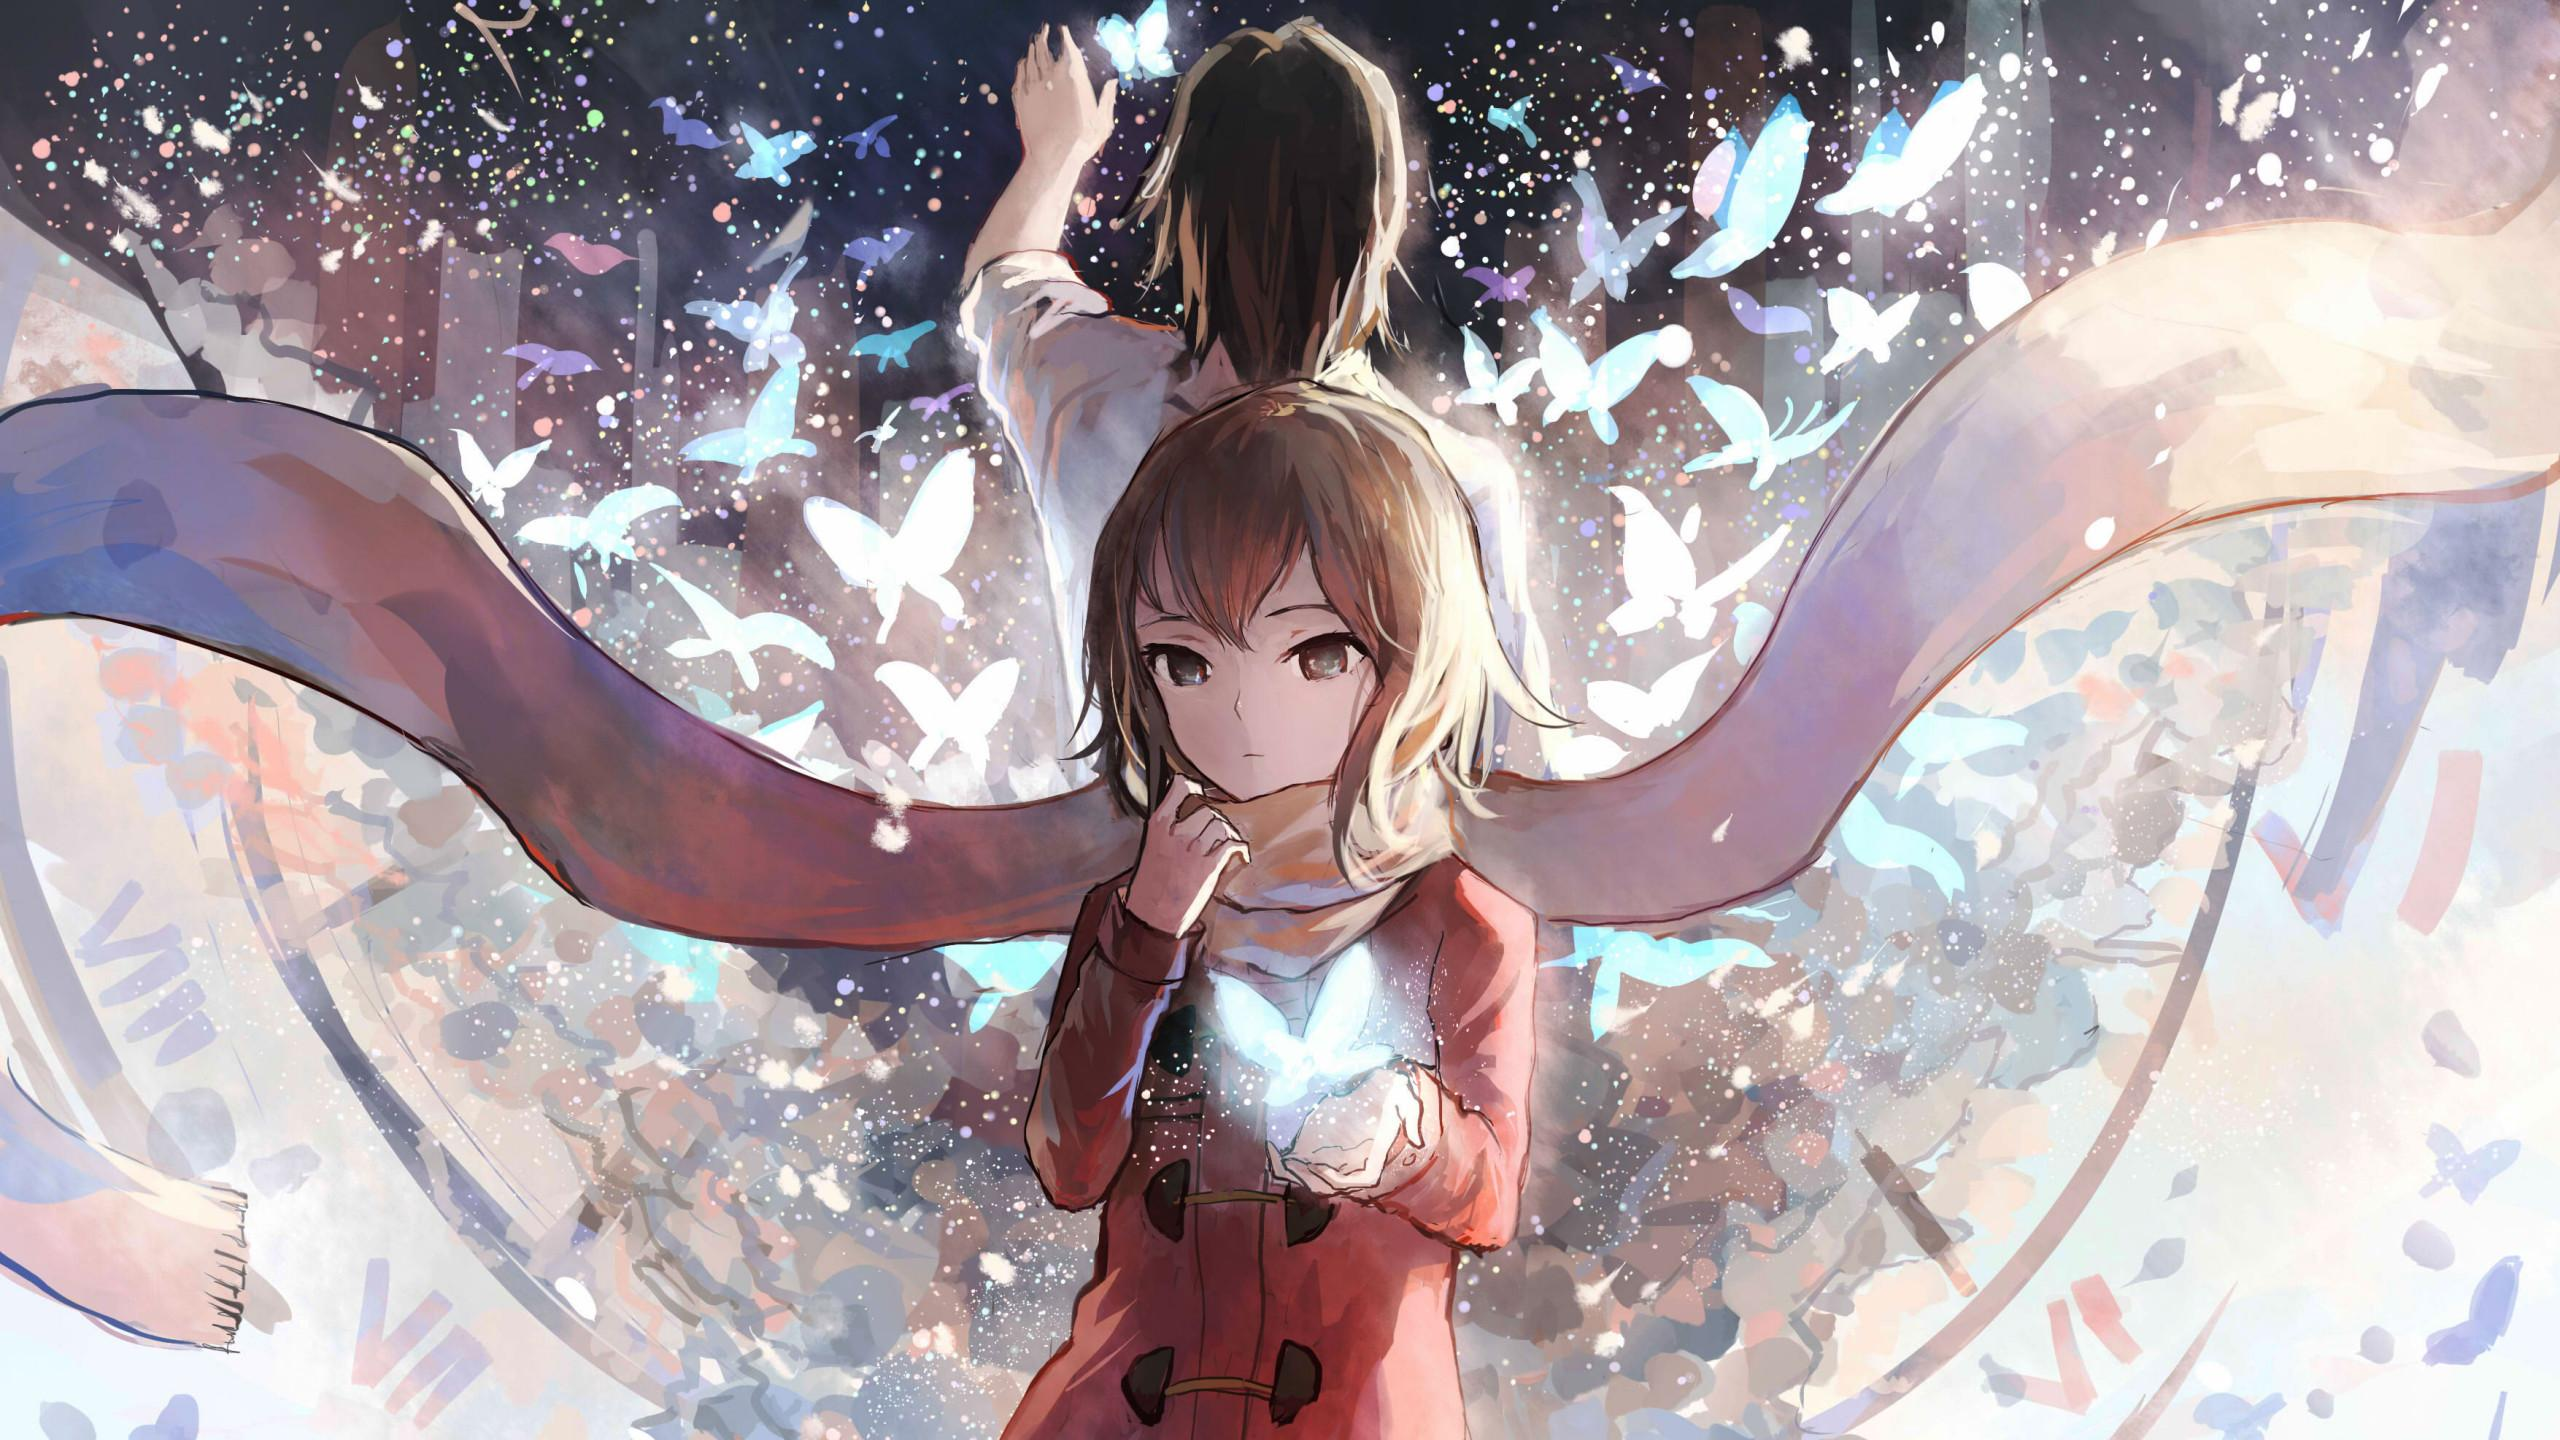 79+ Erased Anime Wallpapers on WallpaperPlay